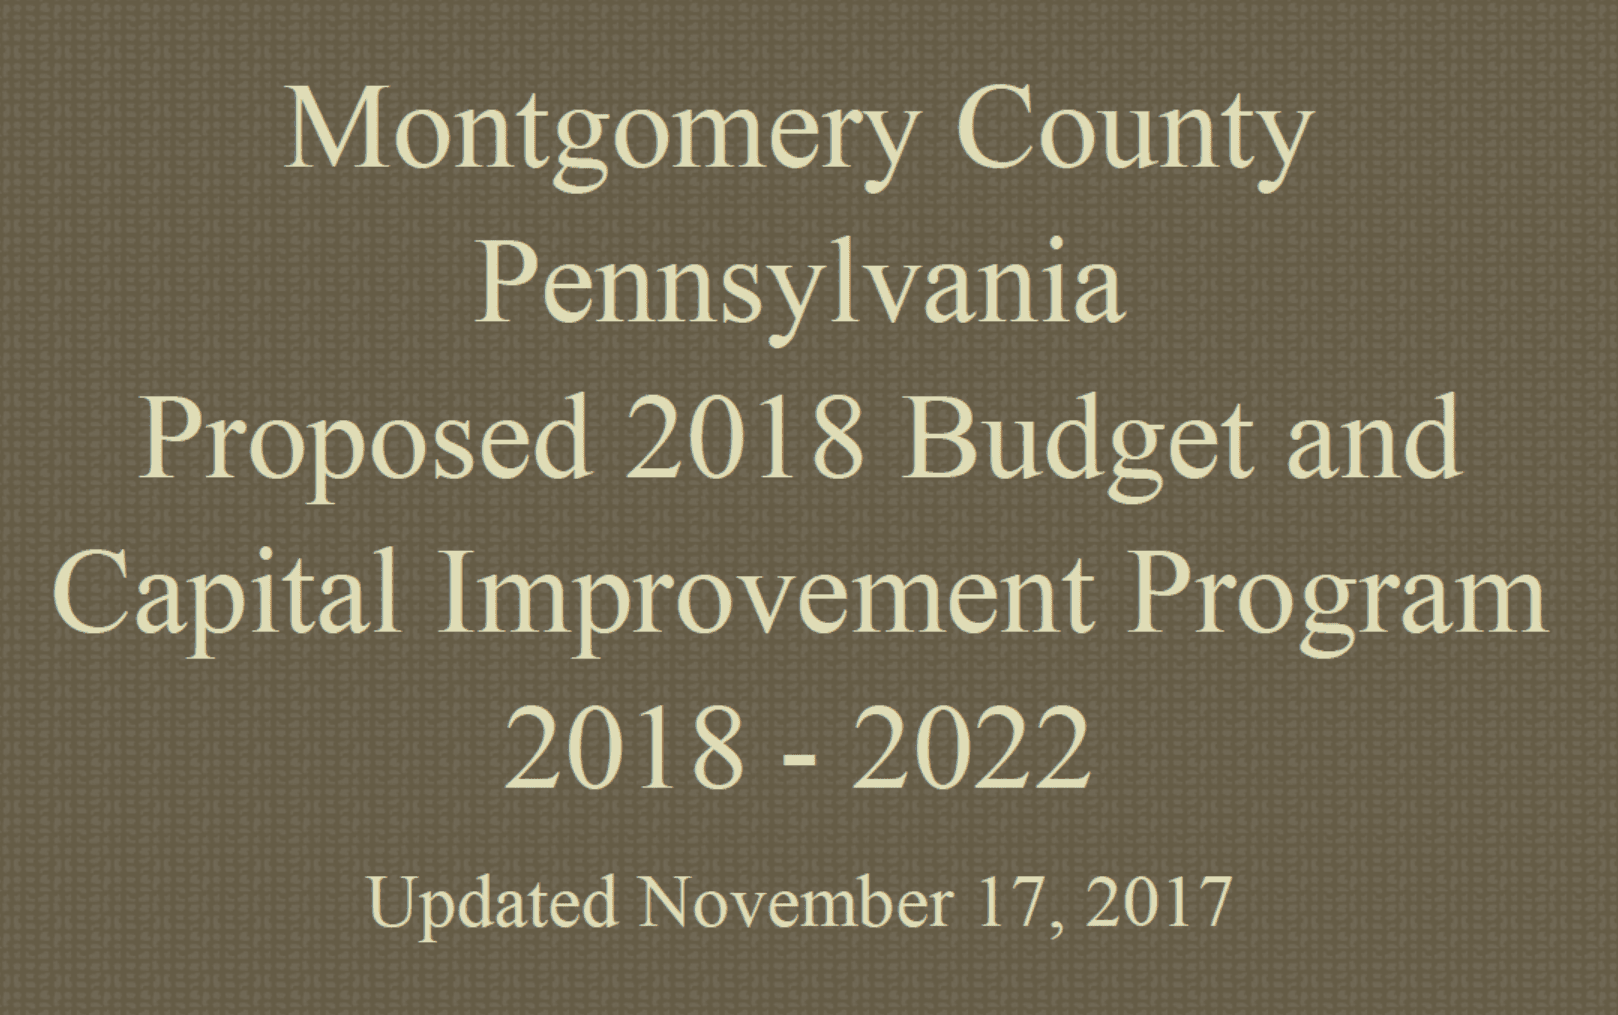 Ponds department of environmental protection montgomery county md - Montgomery County Proposed 2018 Budget And Capital Improvement Program